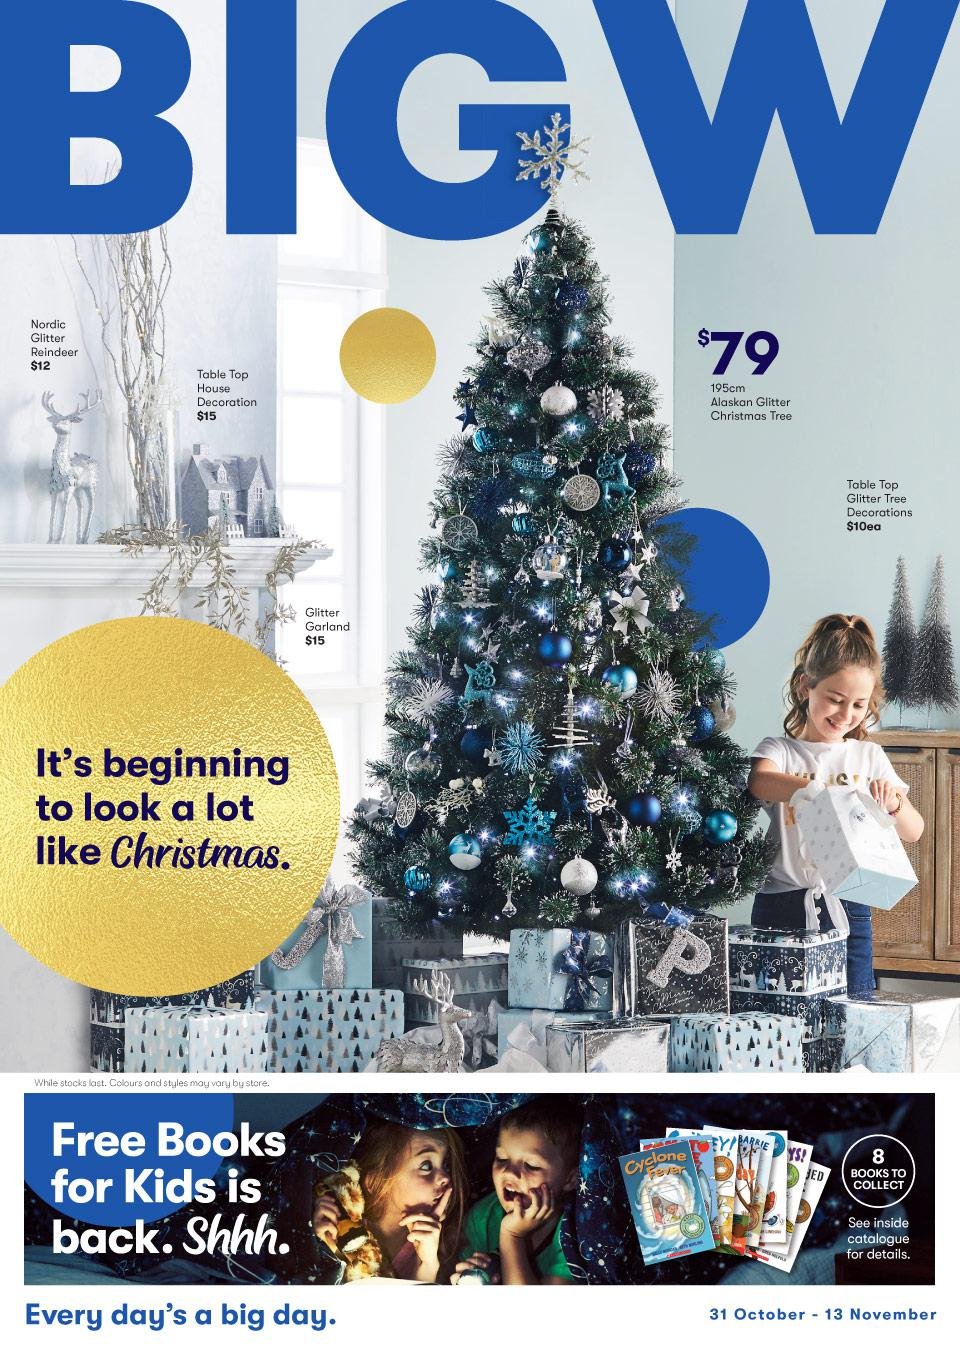 BigW Catalogue 31 October - 13 November 2019. It's Beginning To Look A Lot Like Christmas